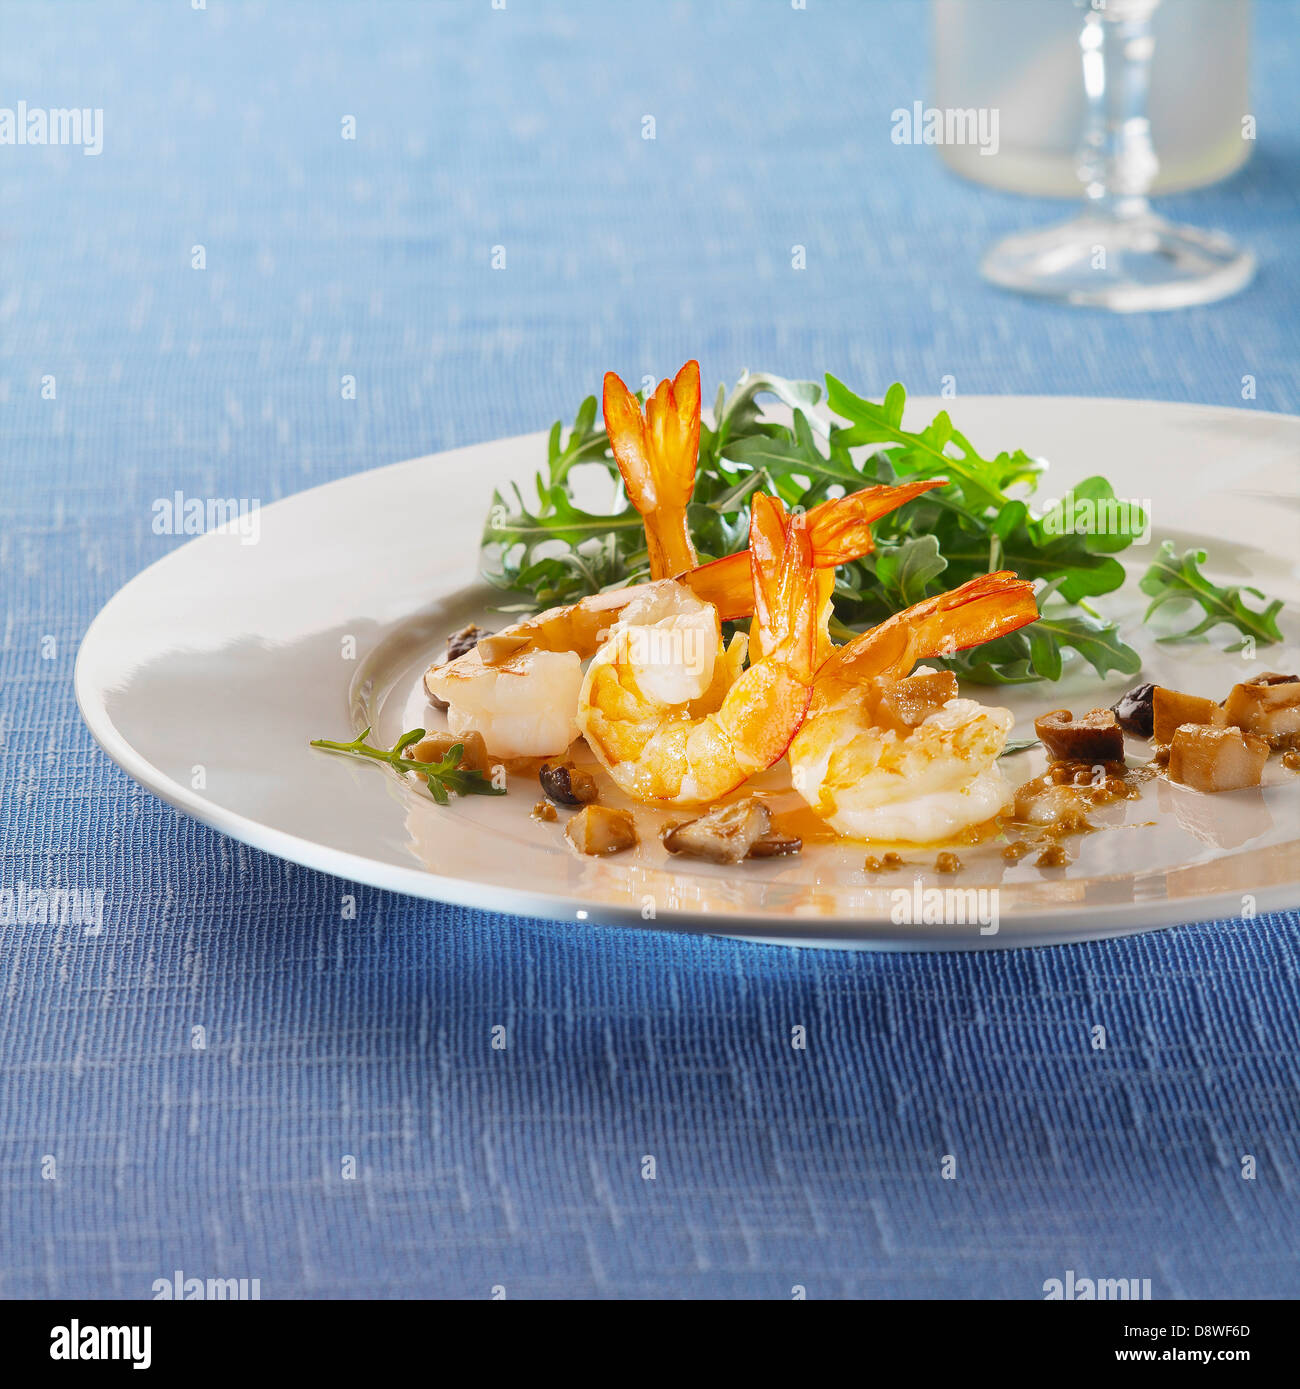 Roasted shrimps and mushrooms with rocket lettuce - Stock Image